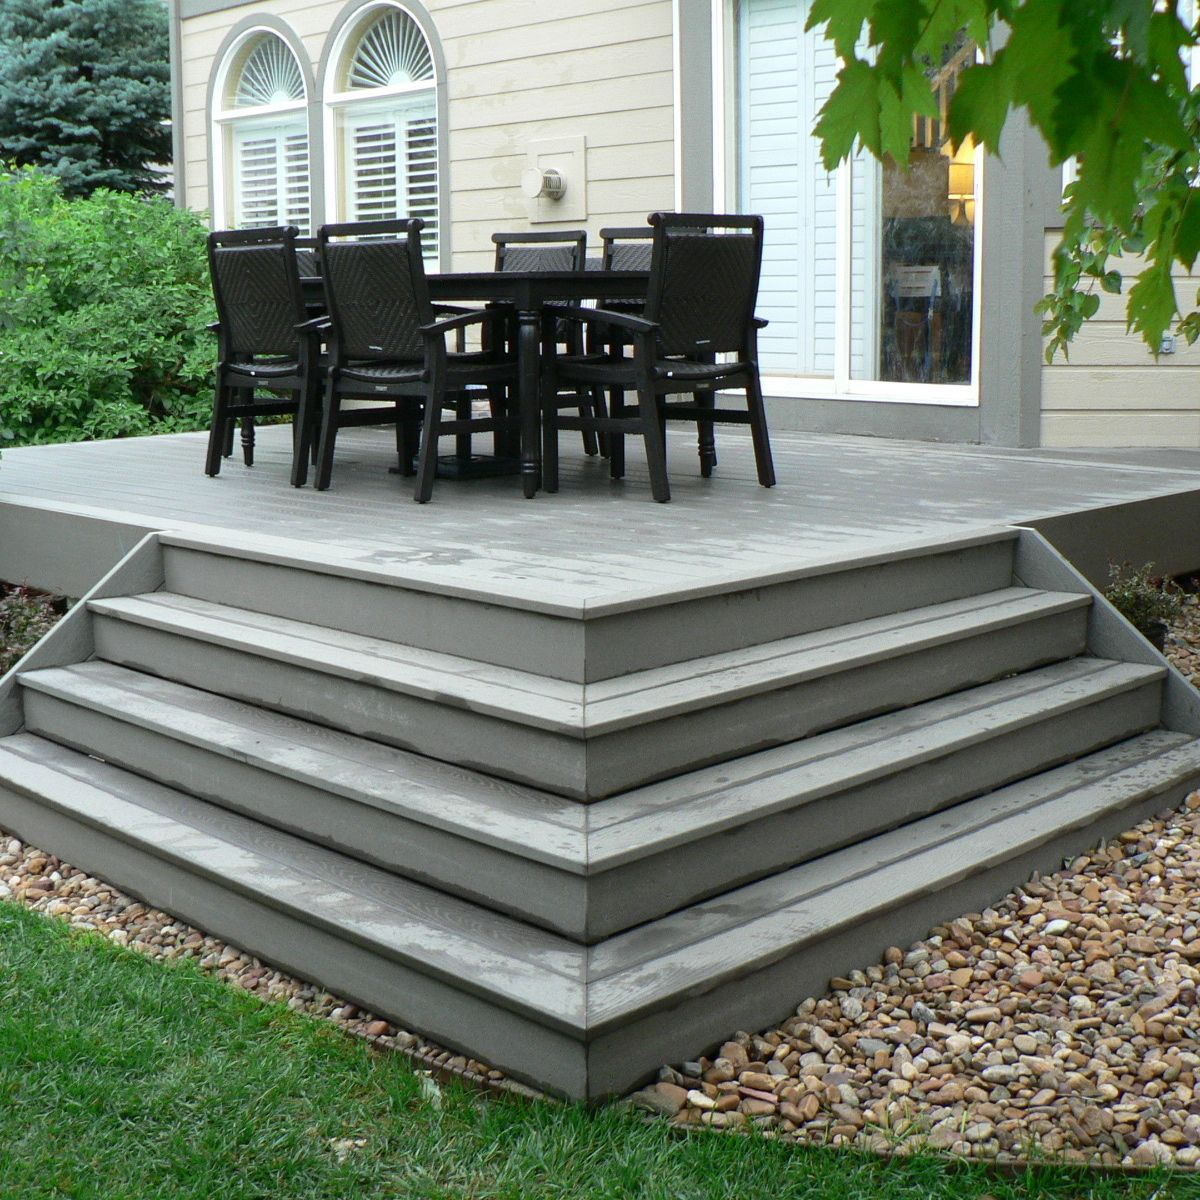 Pictures Of Composite Decks And Steps Small Composite Deck With